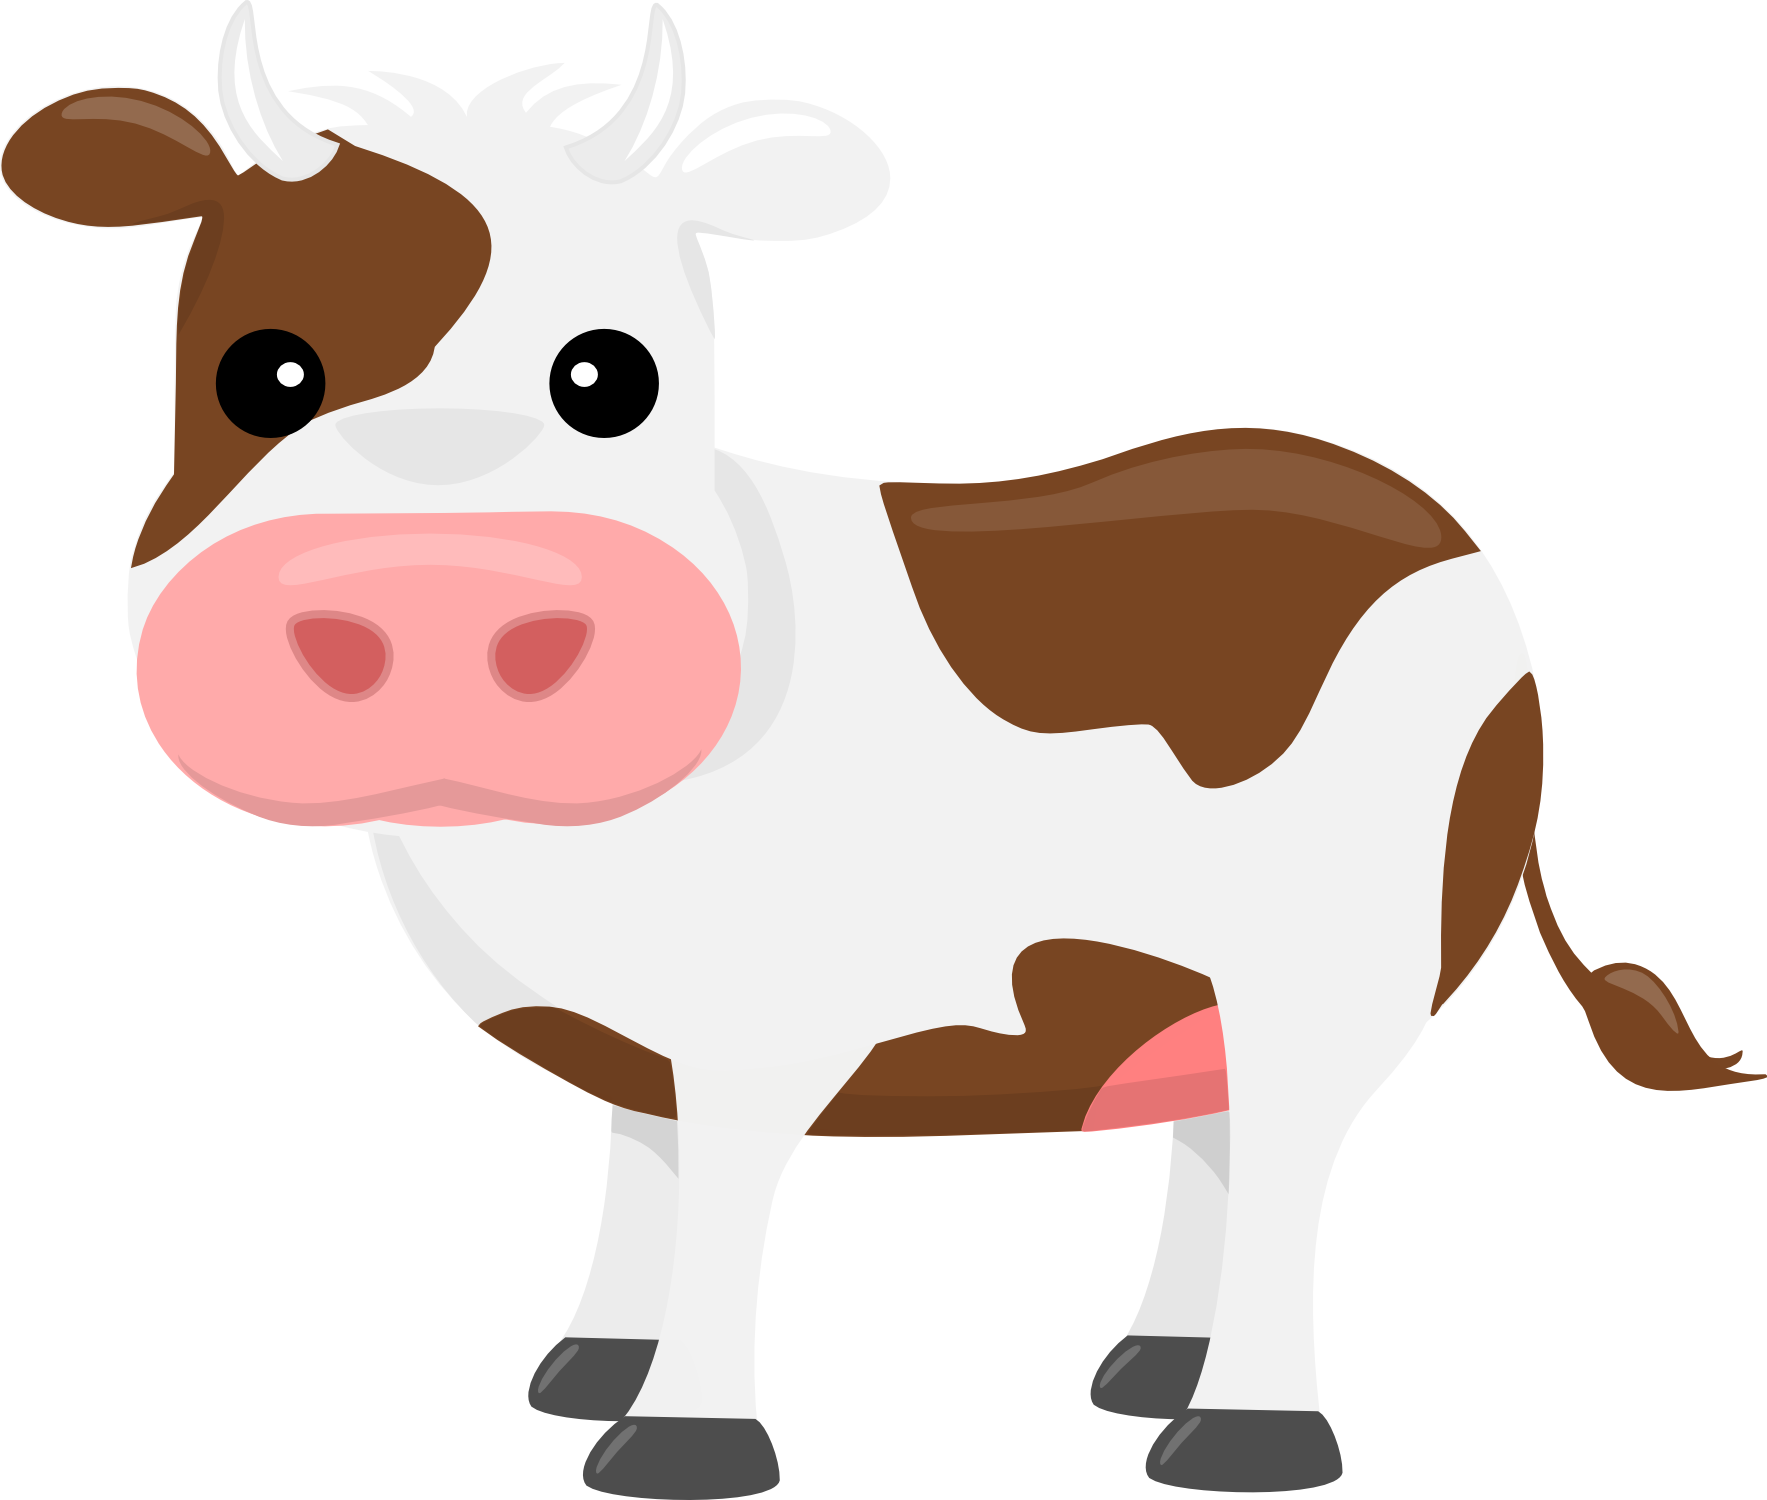 On the farm clip. Farmers clipart cattle farming